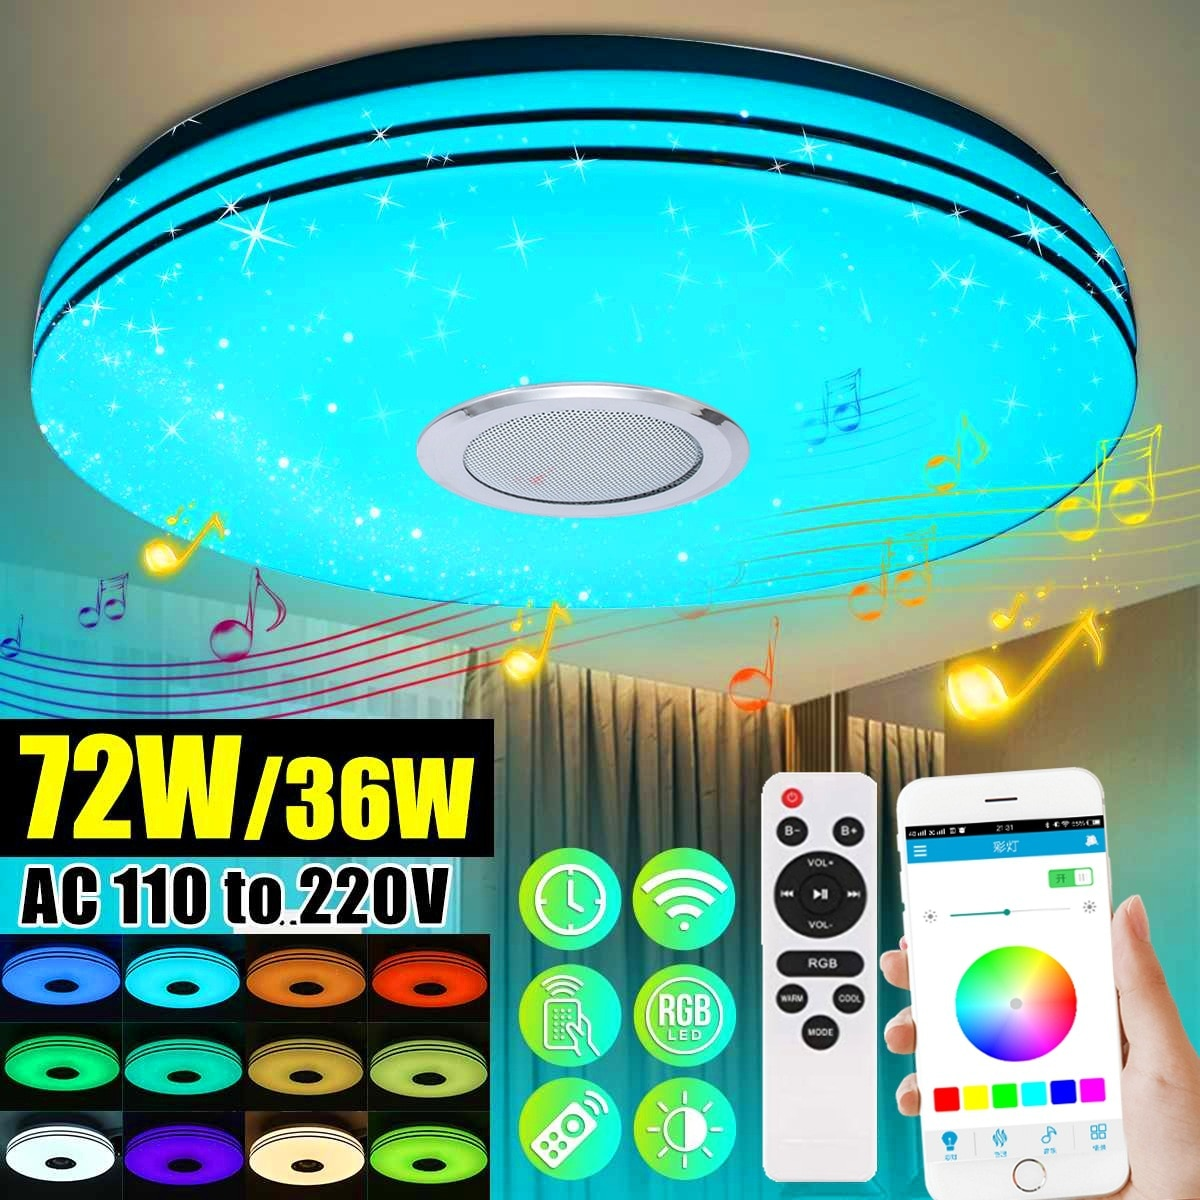 Modern Rgb Led Ceiling Lights Home Lighting 36W 72W App Bluetooth Music Light Bedroom Lamps Smart Ceiling Lamps Remote Controls